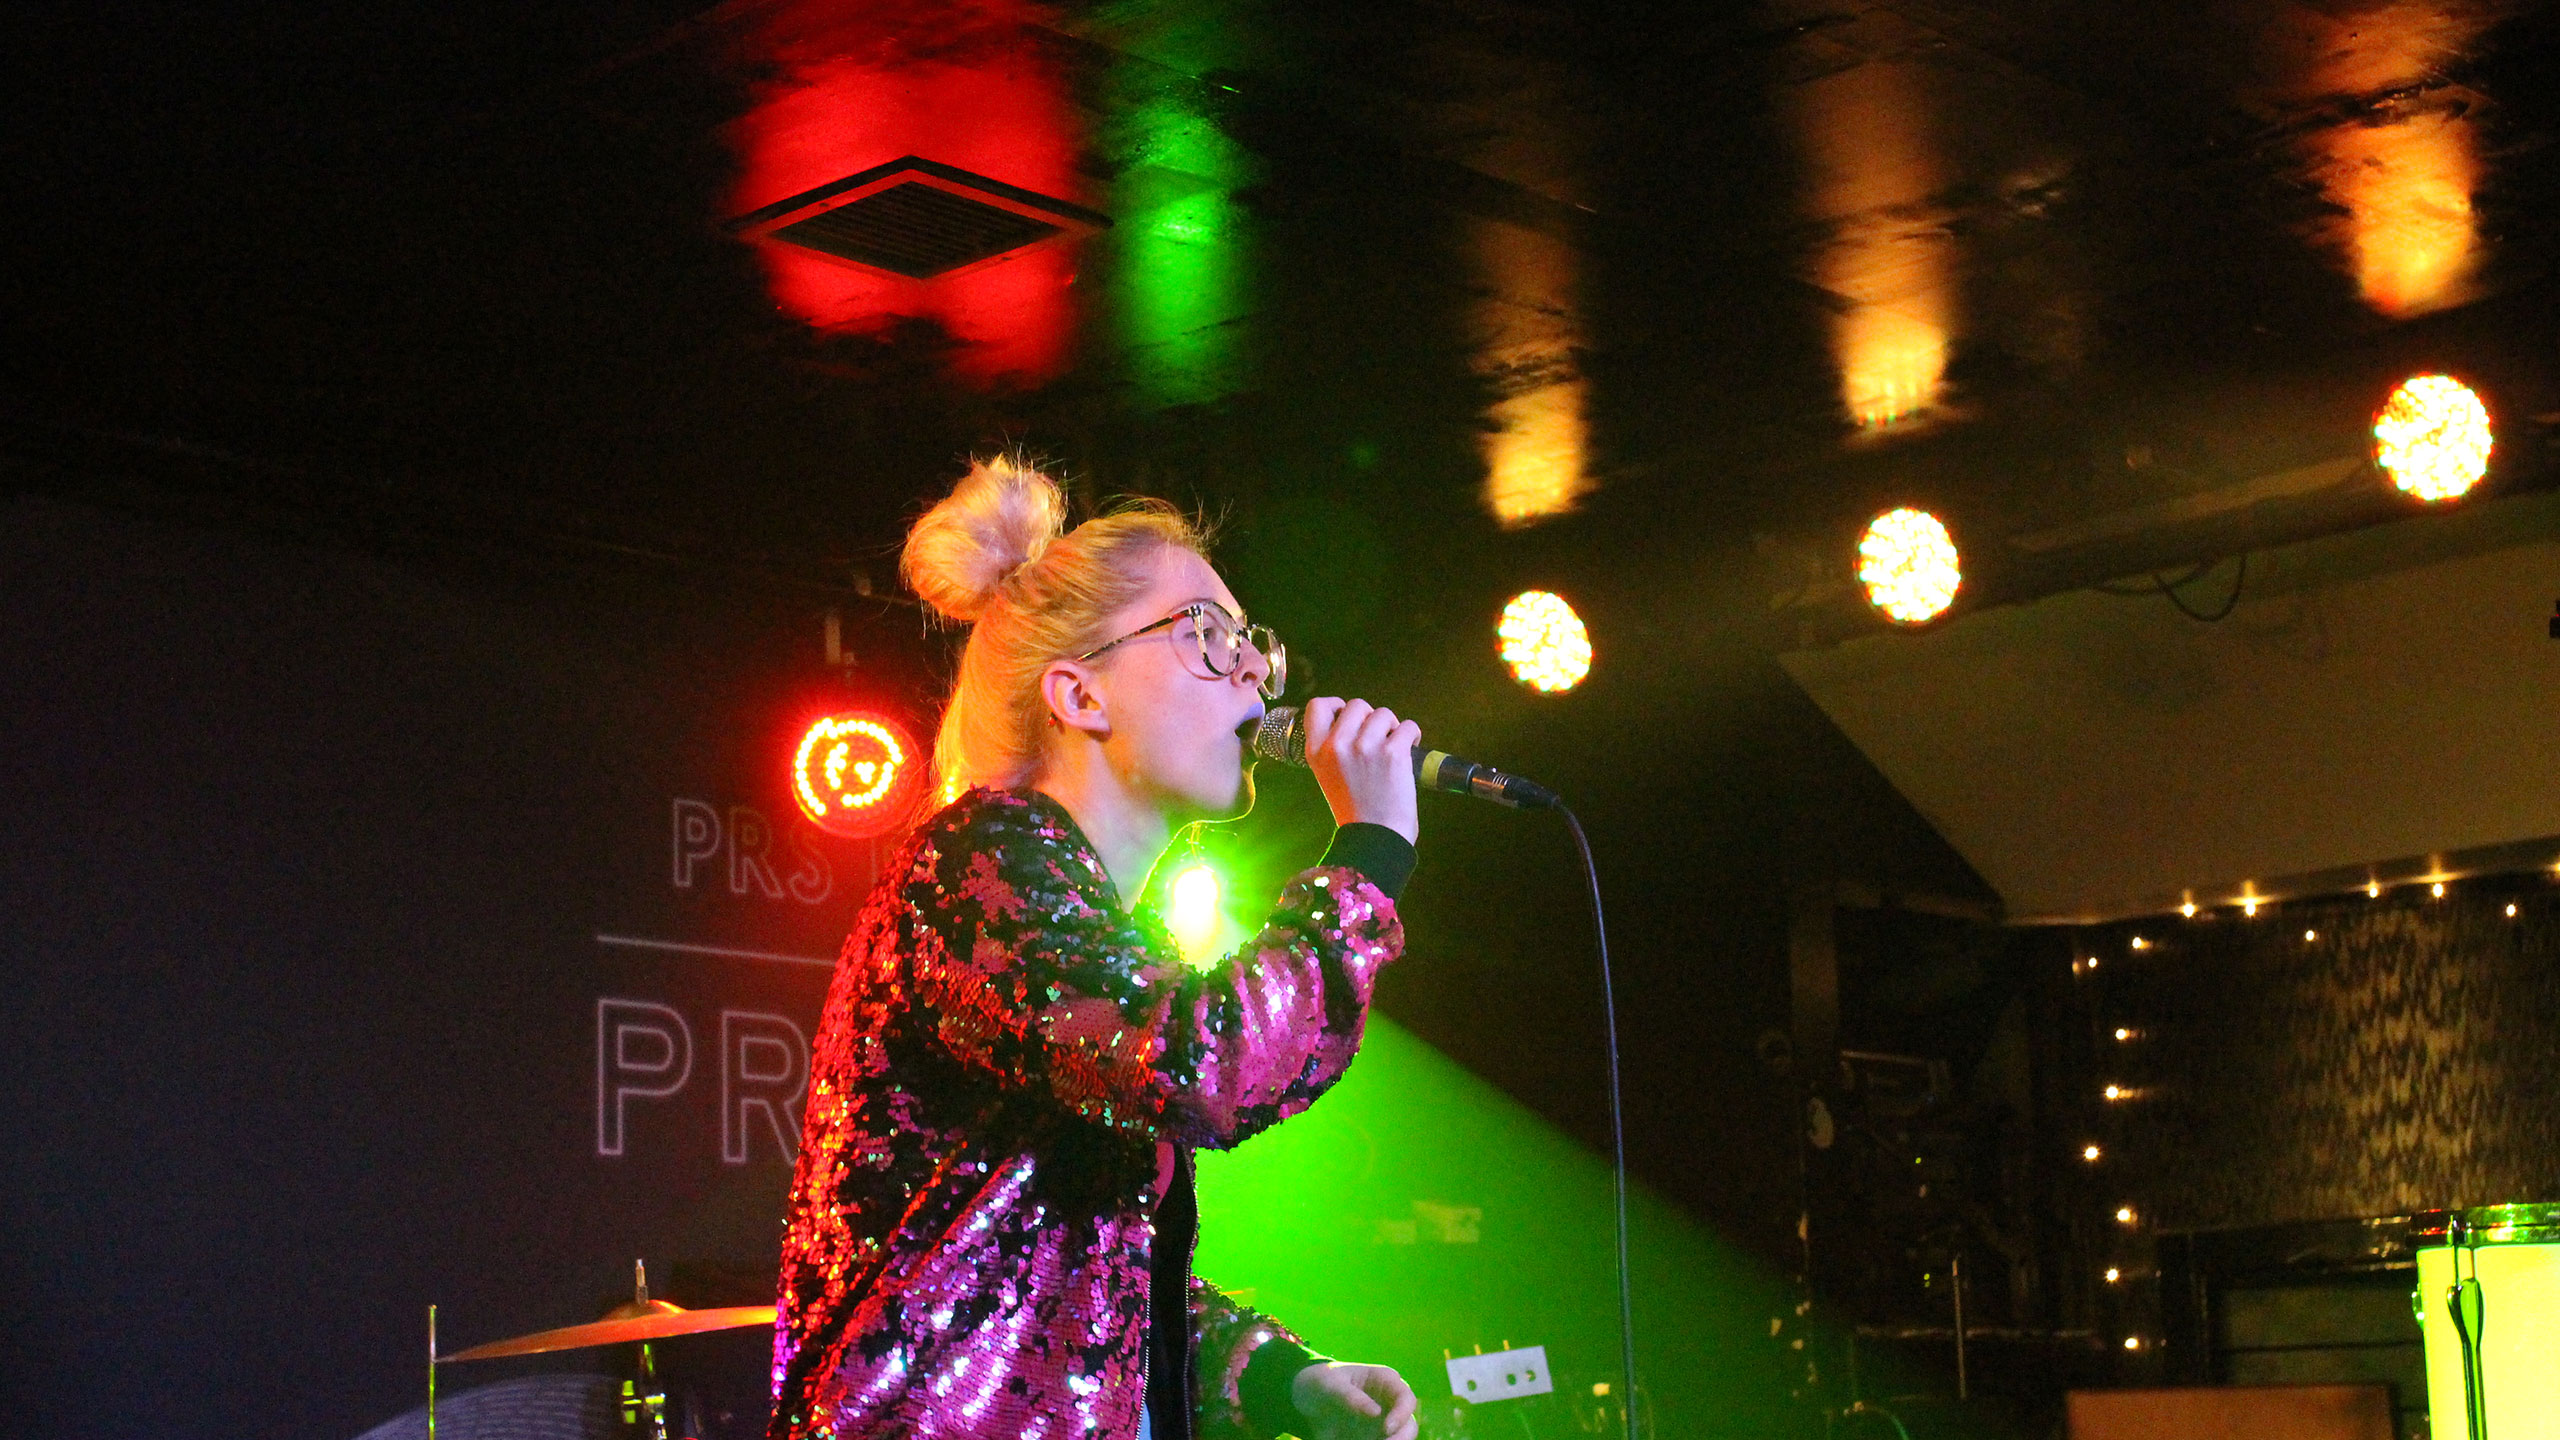 Be Charlotte performing in a pink squined jacket at PRS Presents in Edinburgh